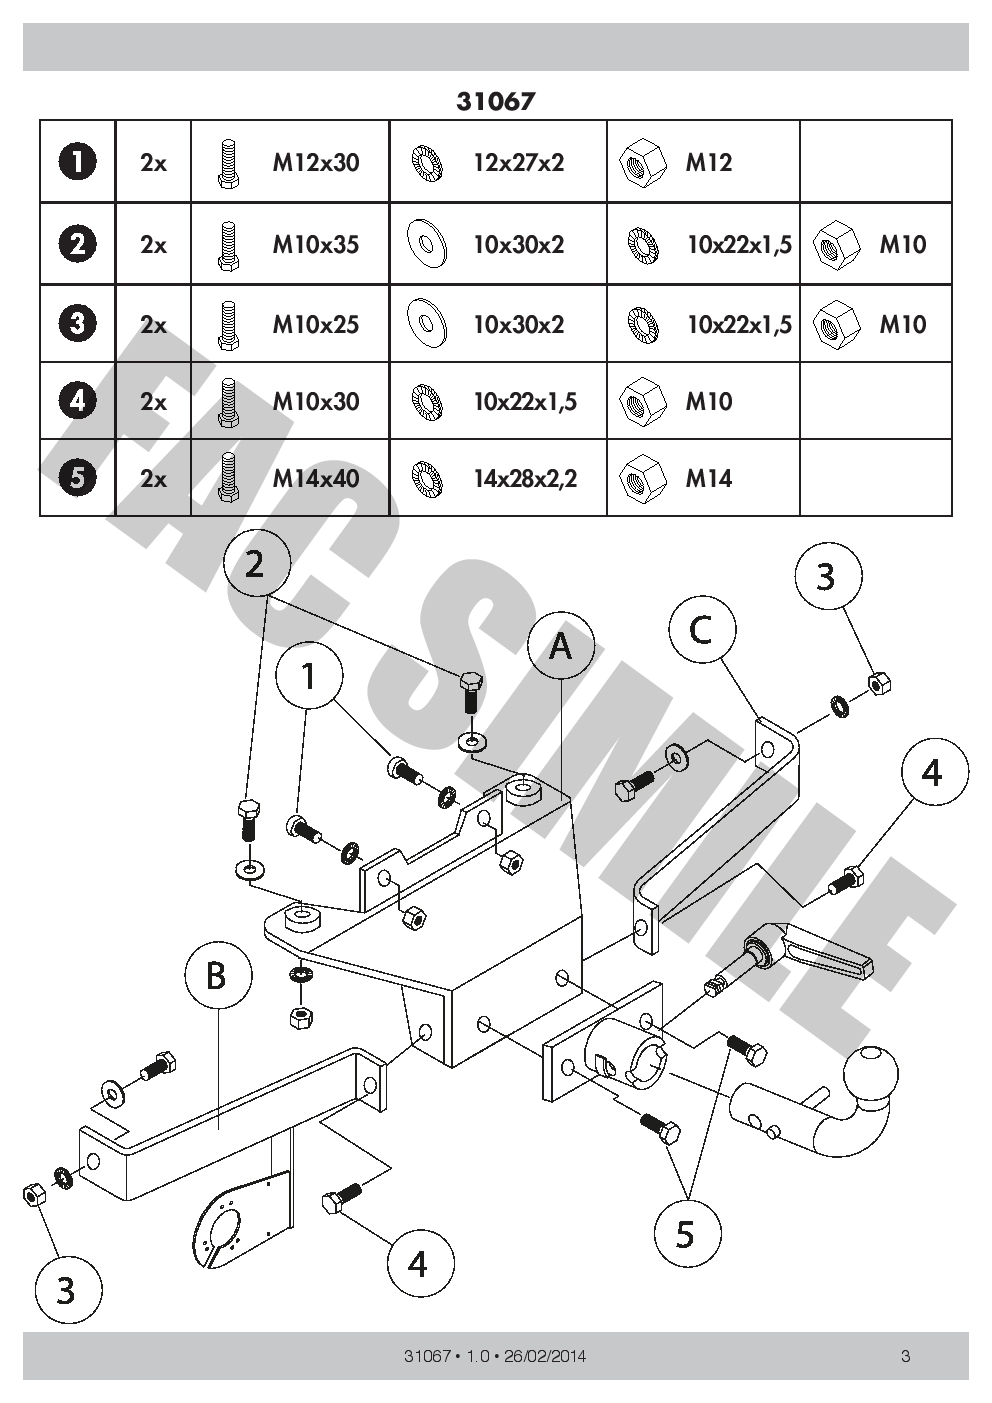 bypass relay wiring diagram 1d891b renault espace towbar wiring diagram wiring resources  1d891b renault espace towbar wiring